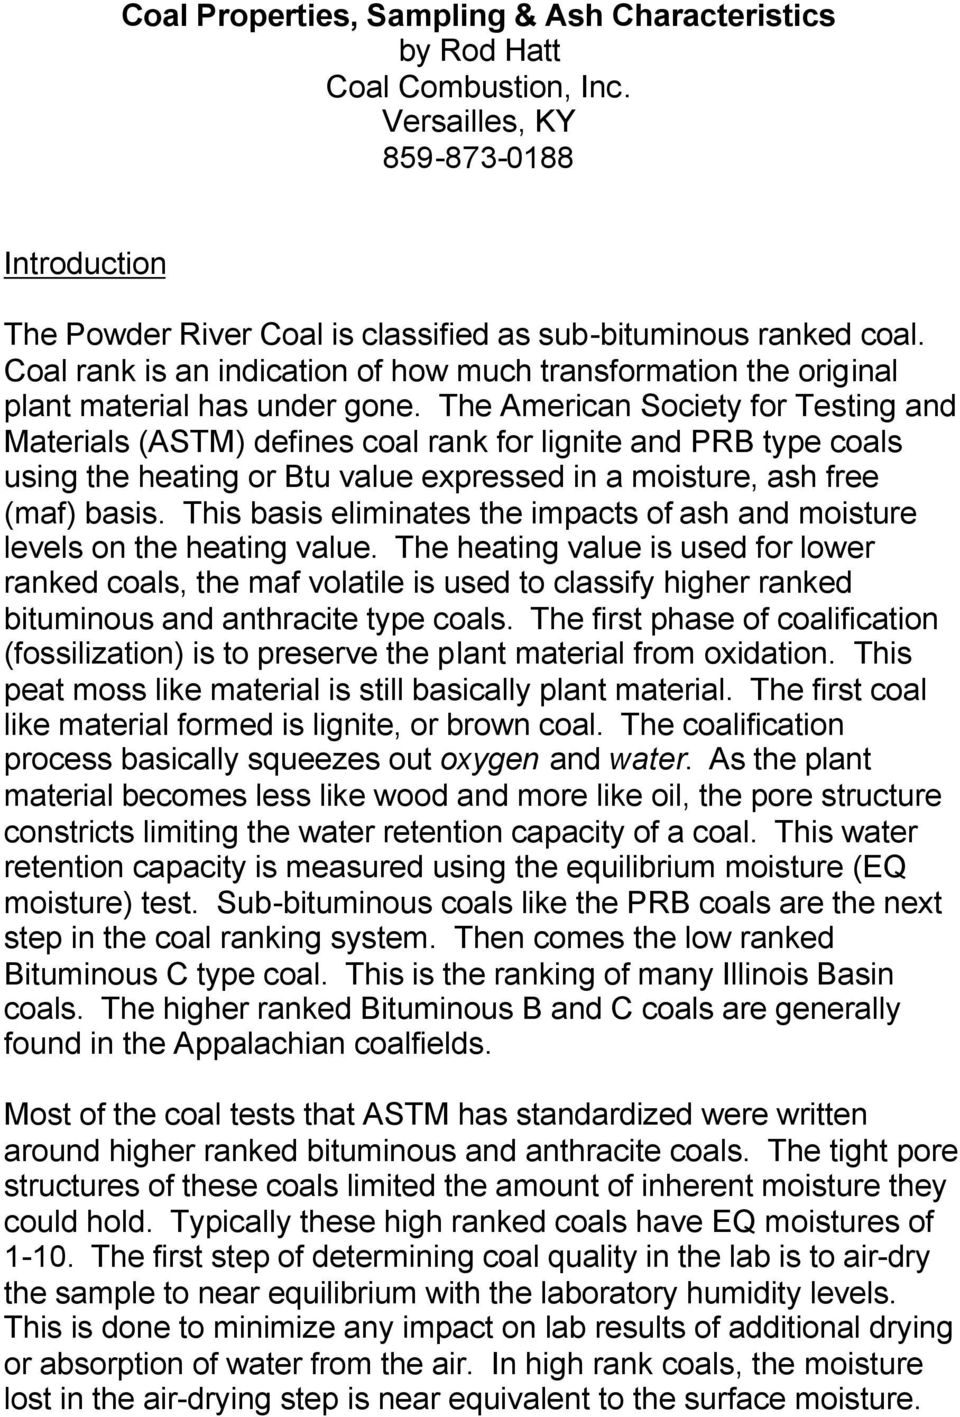 The American Society for Testing and Materials (ASTM) defines coal rank for lignite and PRB type coals using the heating or Btu value expressed in a moisture, ash free (maf) basis.